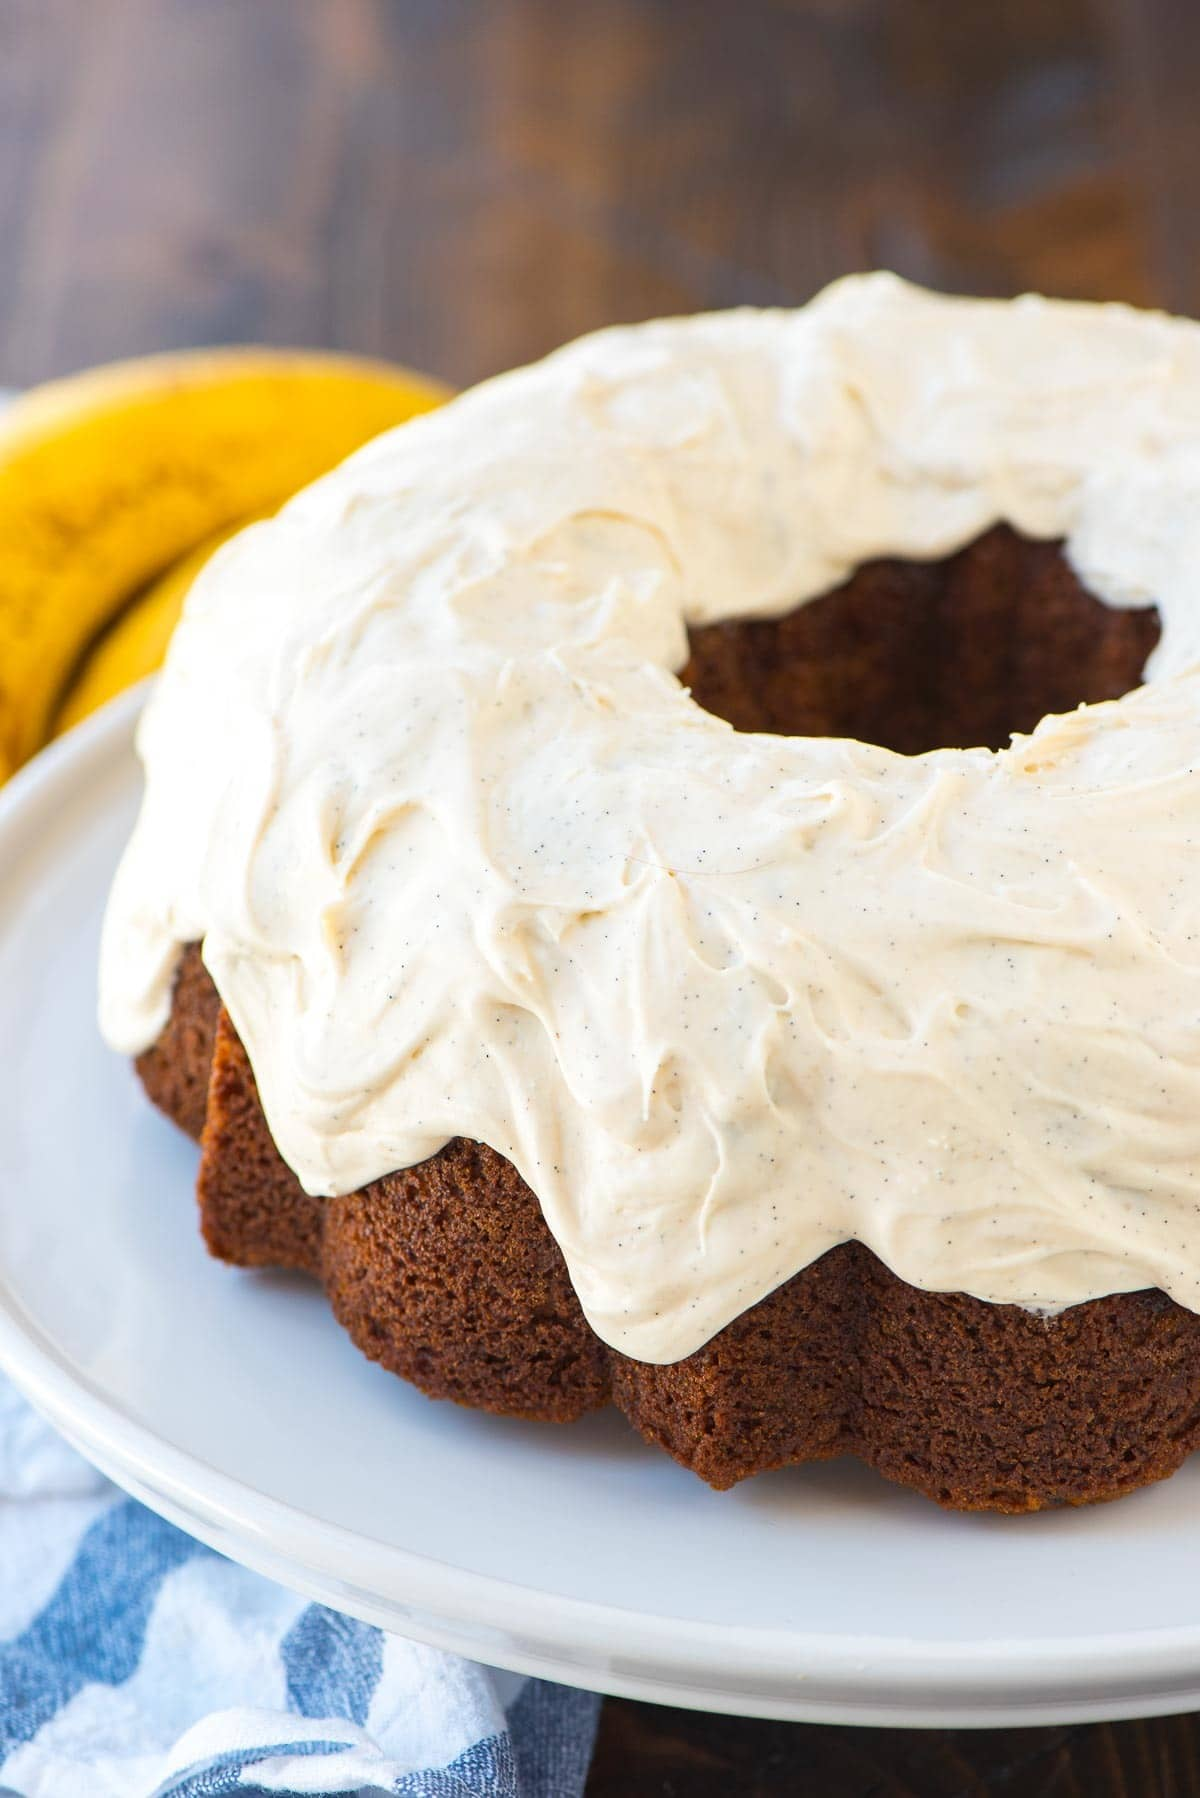 The BEST Banana Bundt Cake. Easy, moist and a MUST if you have overripe bananas. The vanilla cream cheese frosting puts it over the top! Recipe at wellplated.com | @wellplated